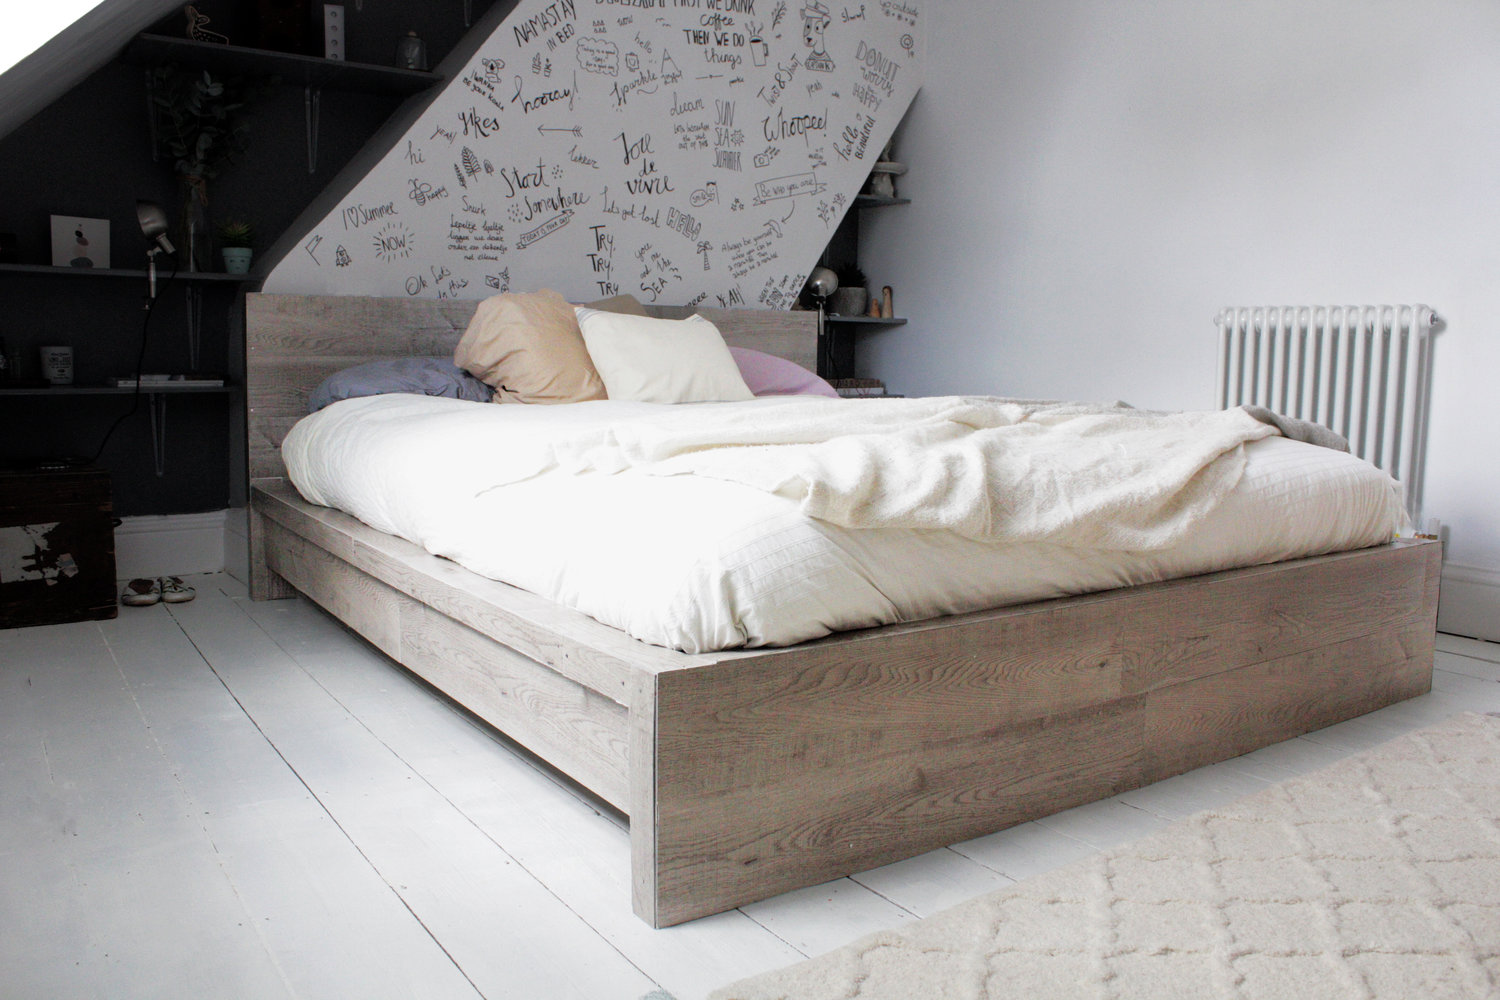 ikea hack, rustic look for a malm bedframe — hester's handmade home